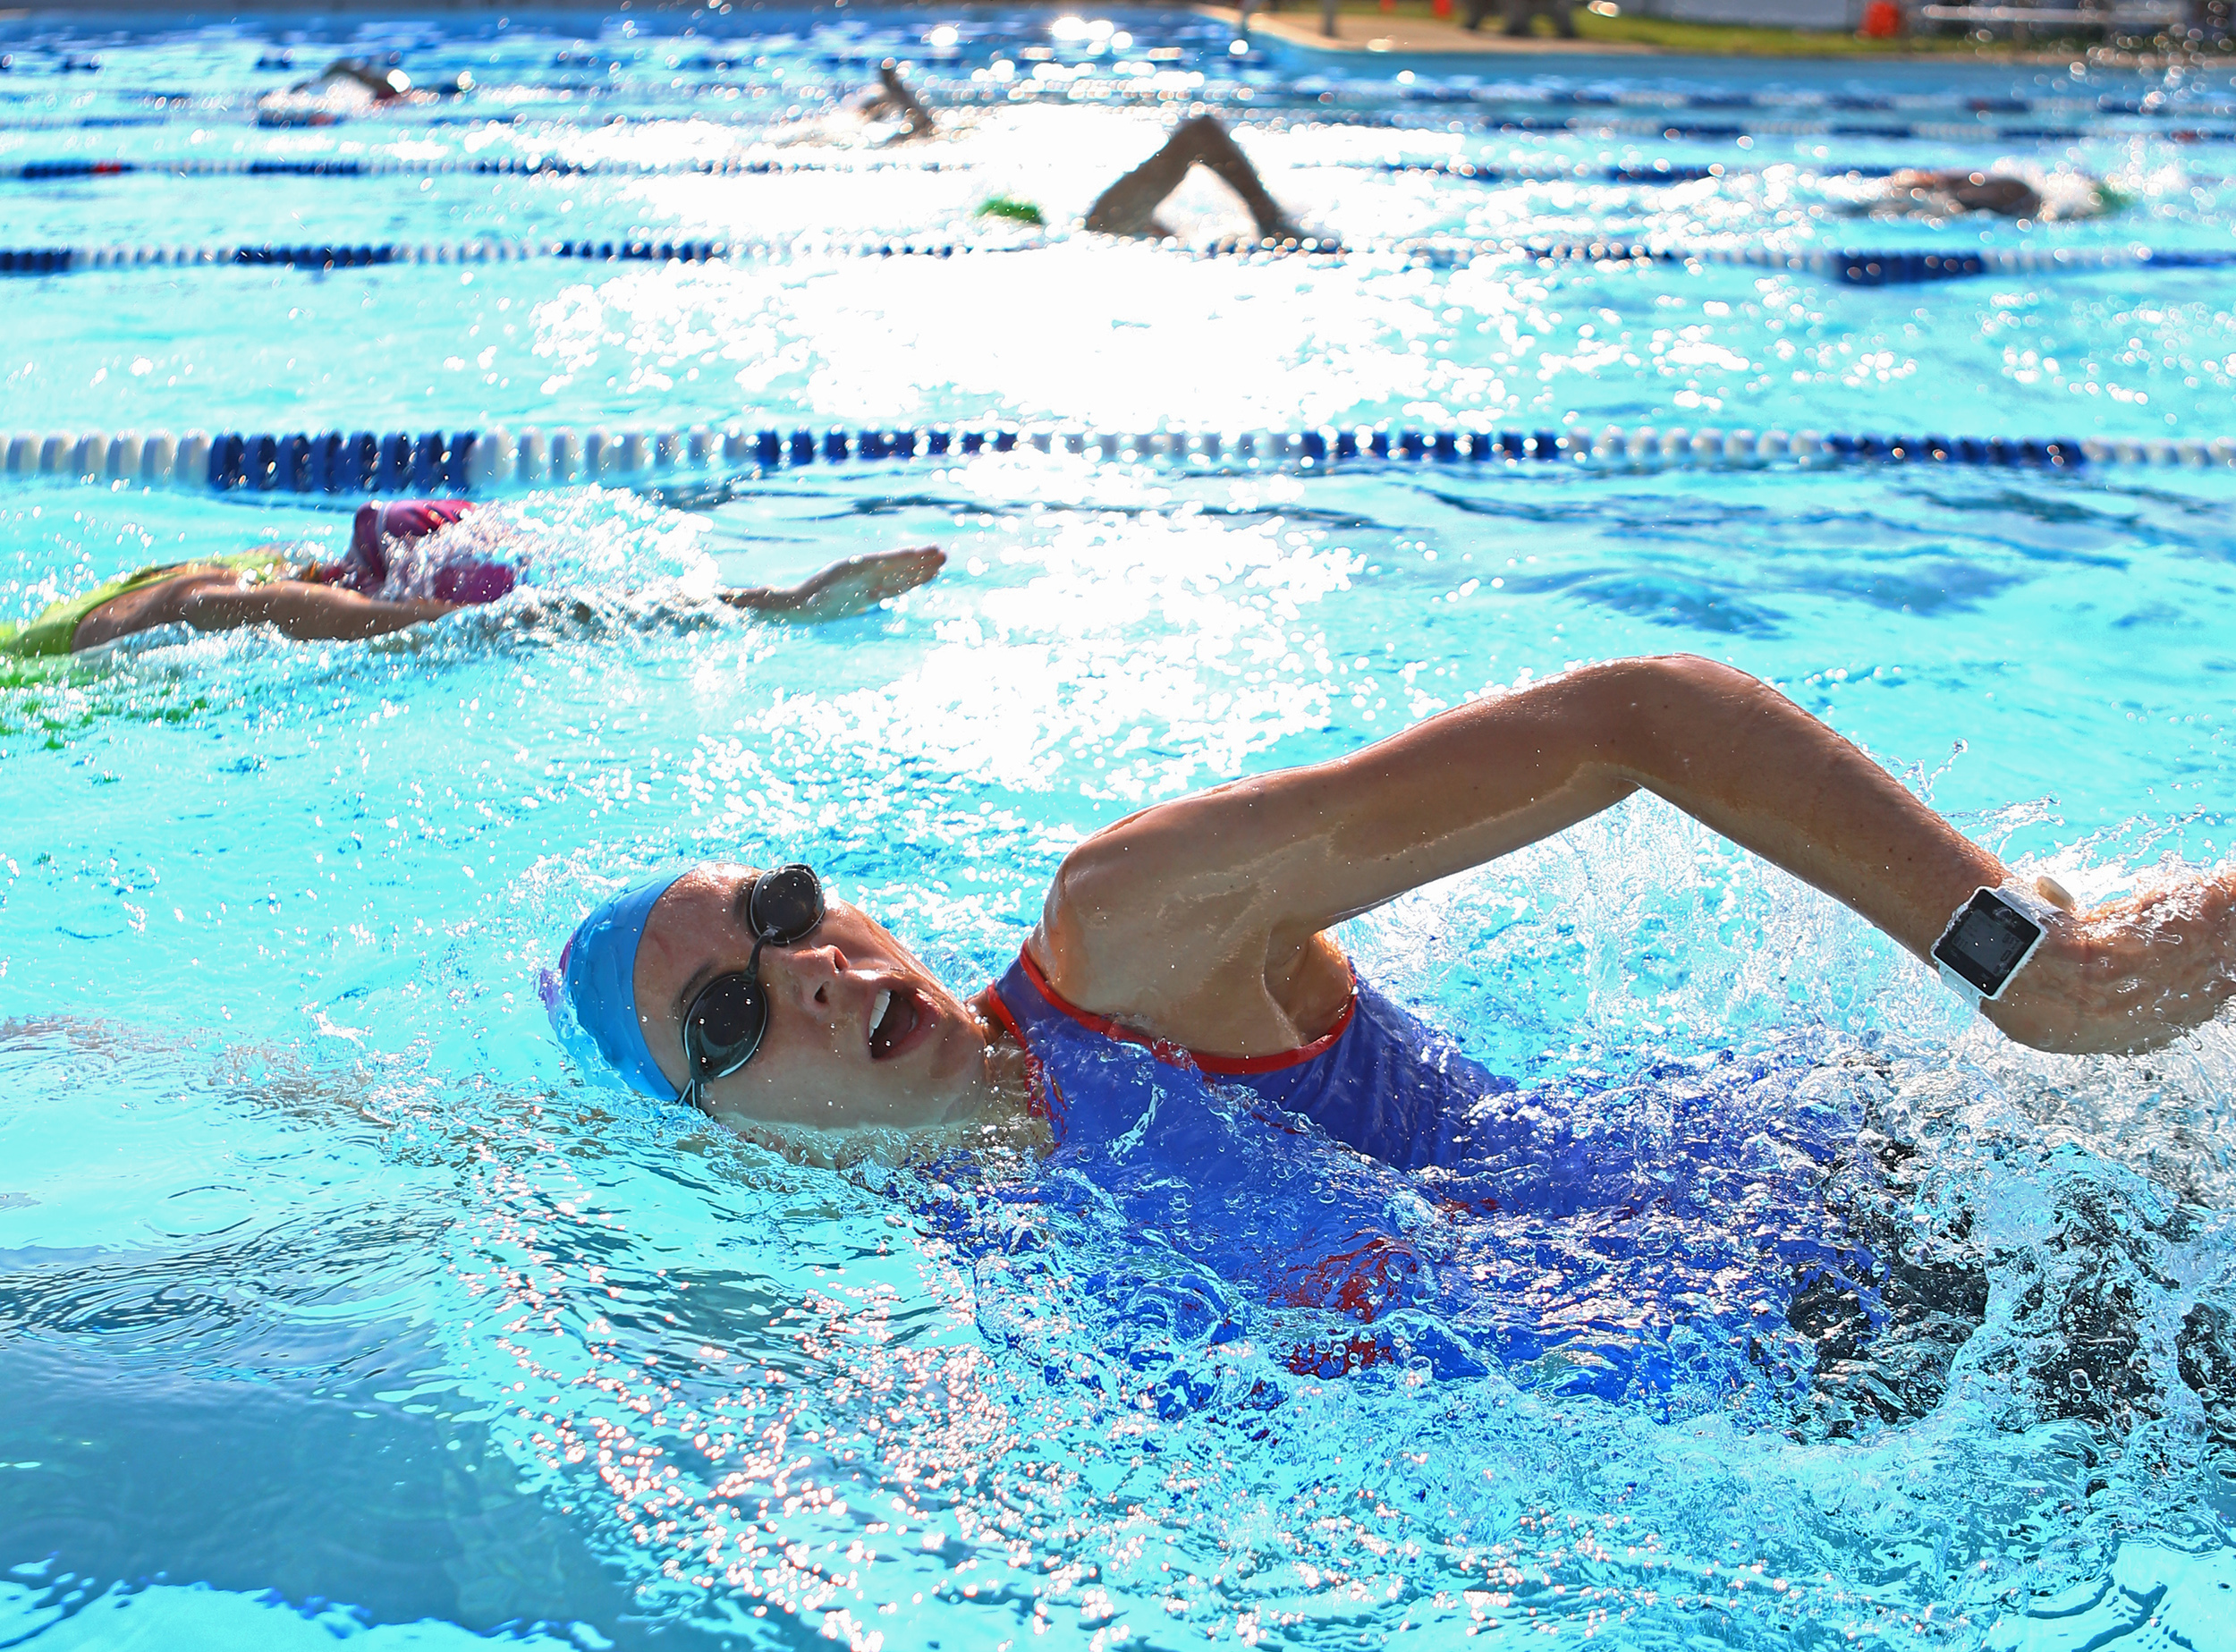 Allison Saunders of Williamsport takes a breath while swimming in the first portion of the Millheim Pool Sprint Triathlon in Millheim Pool on Saturday, June 25, 2016.